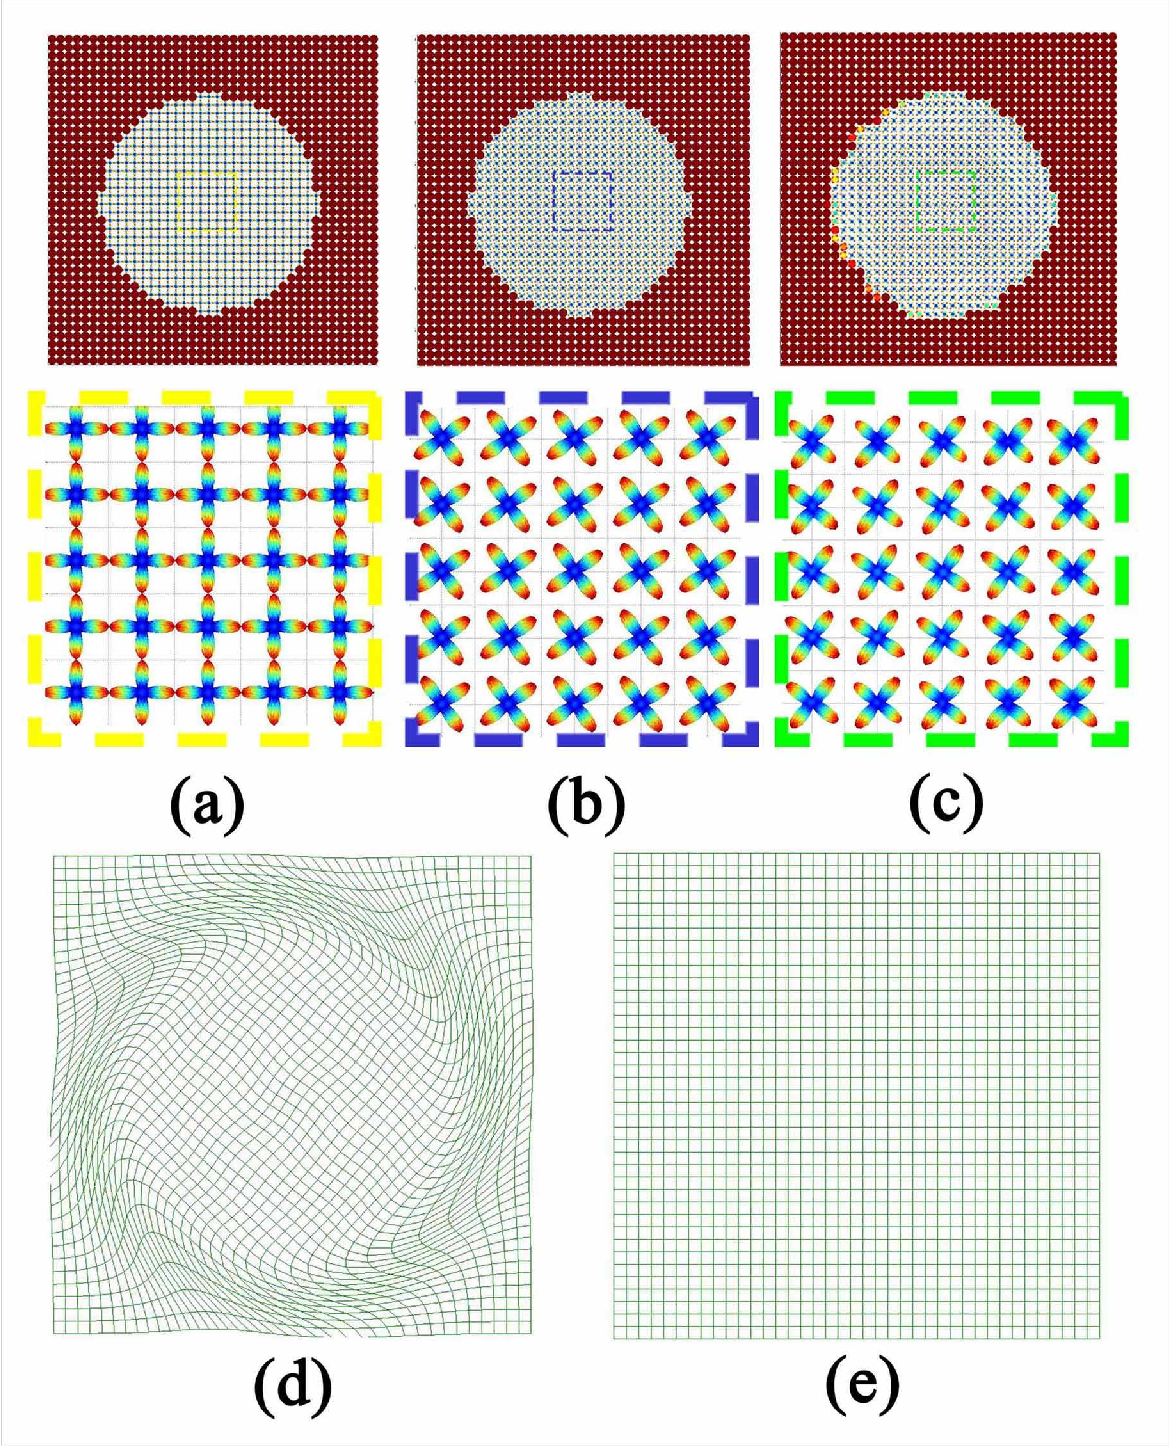 Figure 3 for Diffeomorphic Metric Mapping of High Angular Resolution Diffusion Imaging based on Riemannian Structure of Orientation Distribution Functions